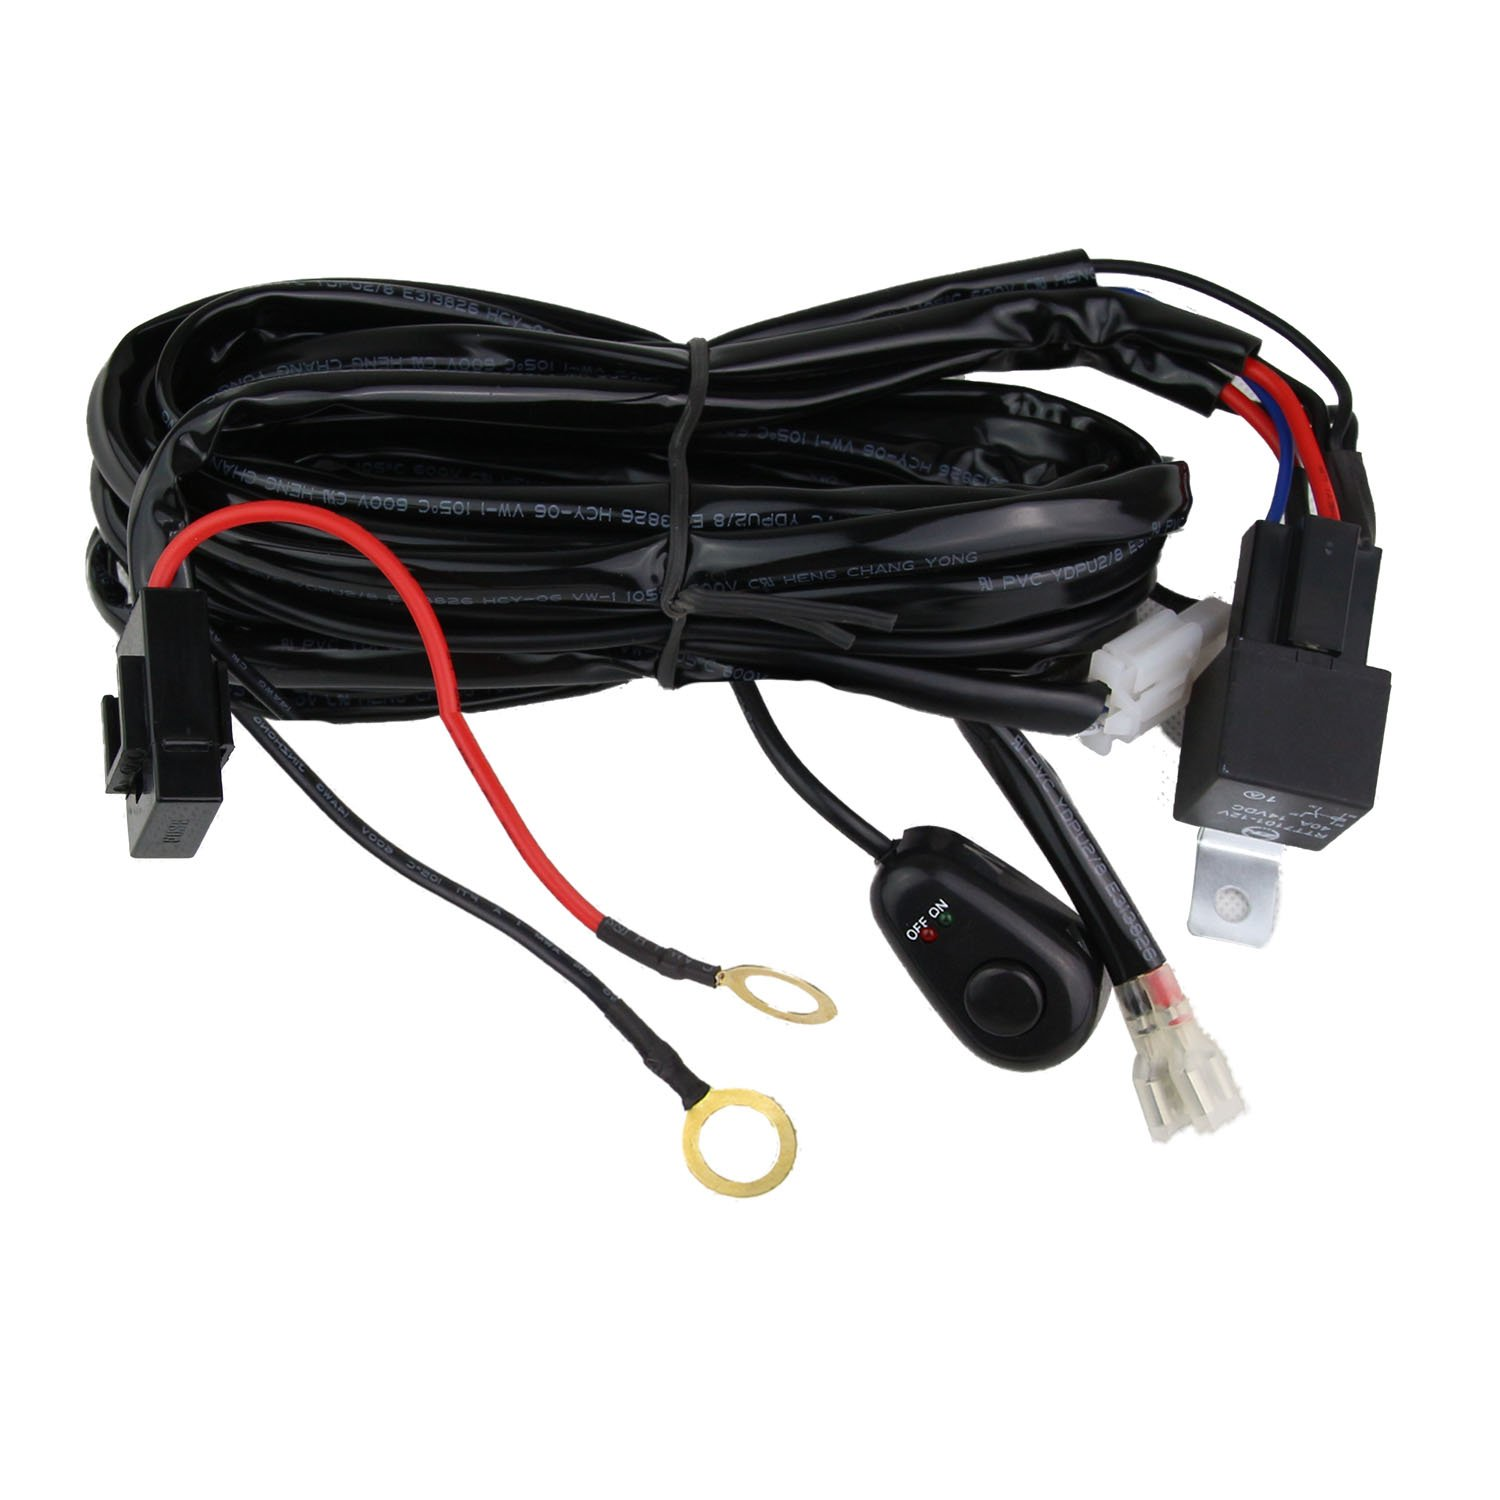 715cKKkf XL._SL1500_ amazon com wiring harnesses electrical automotive  at readyjetset.co